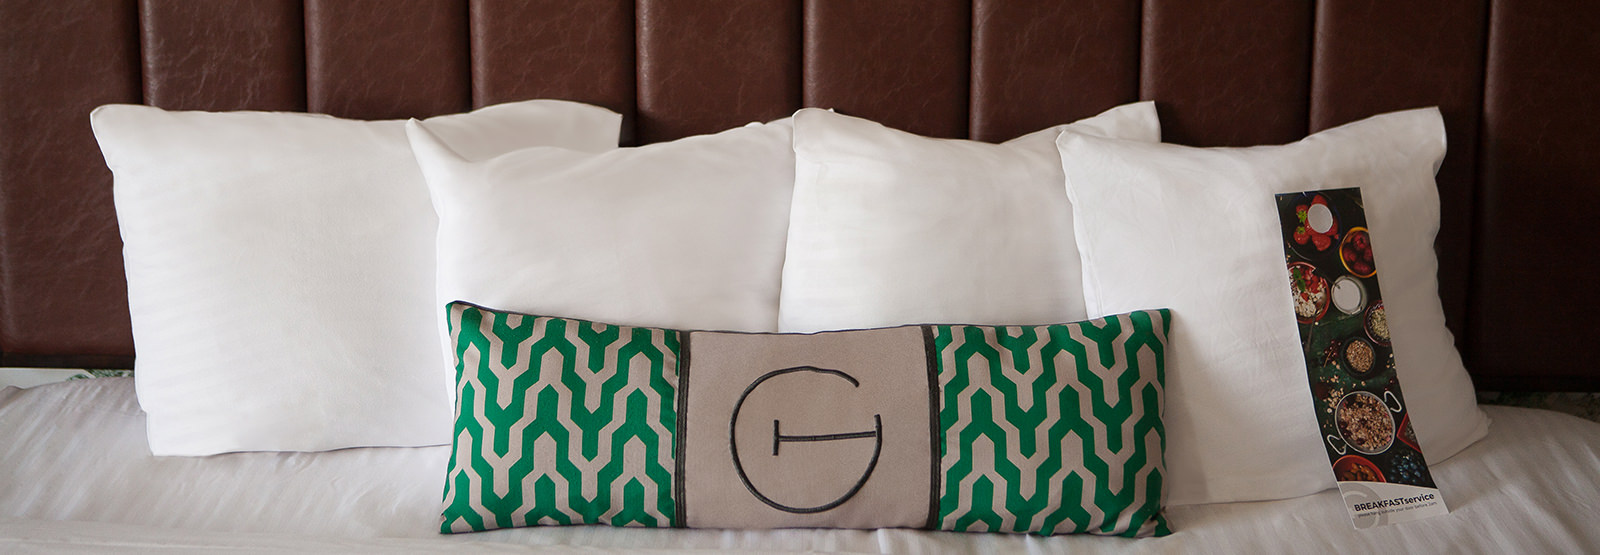 Grove Hotel Pillow - every detail matters